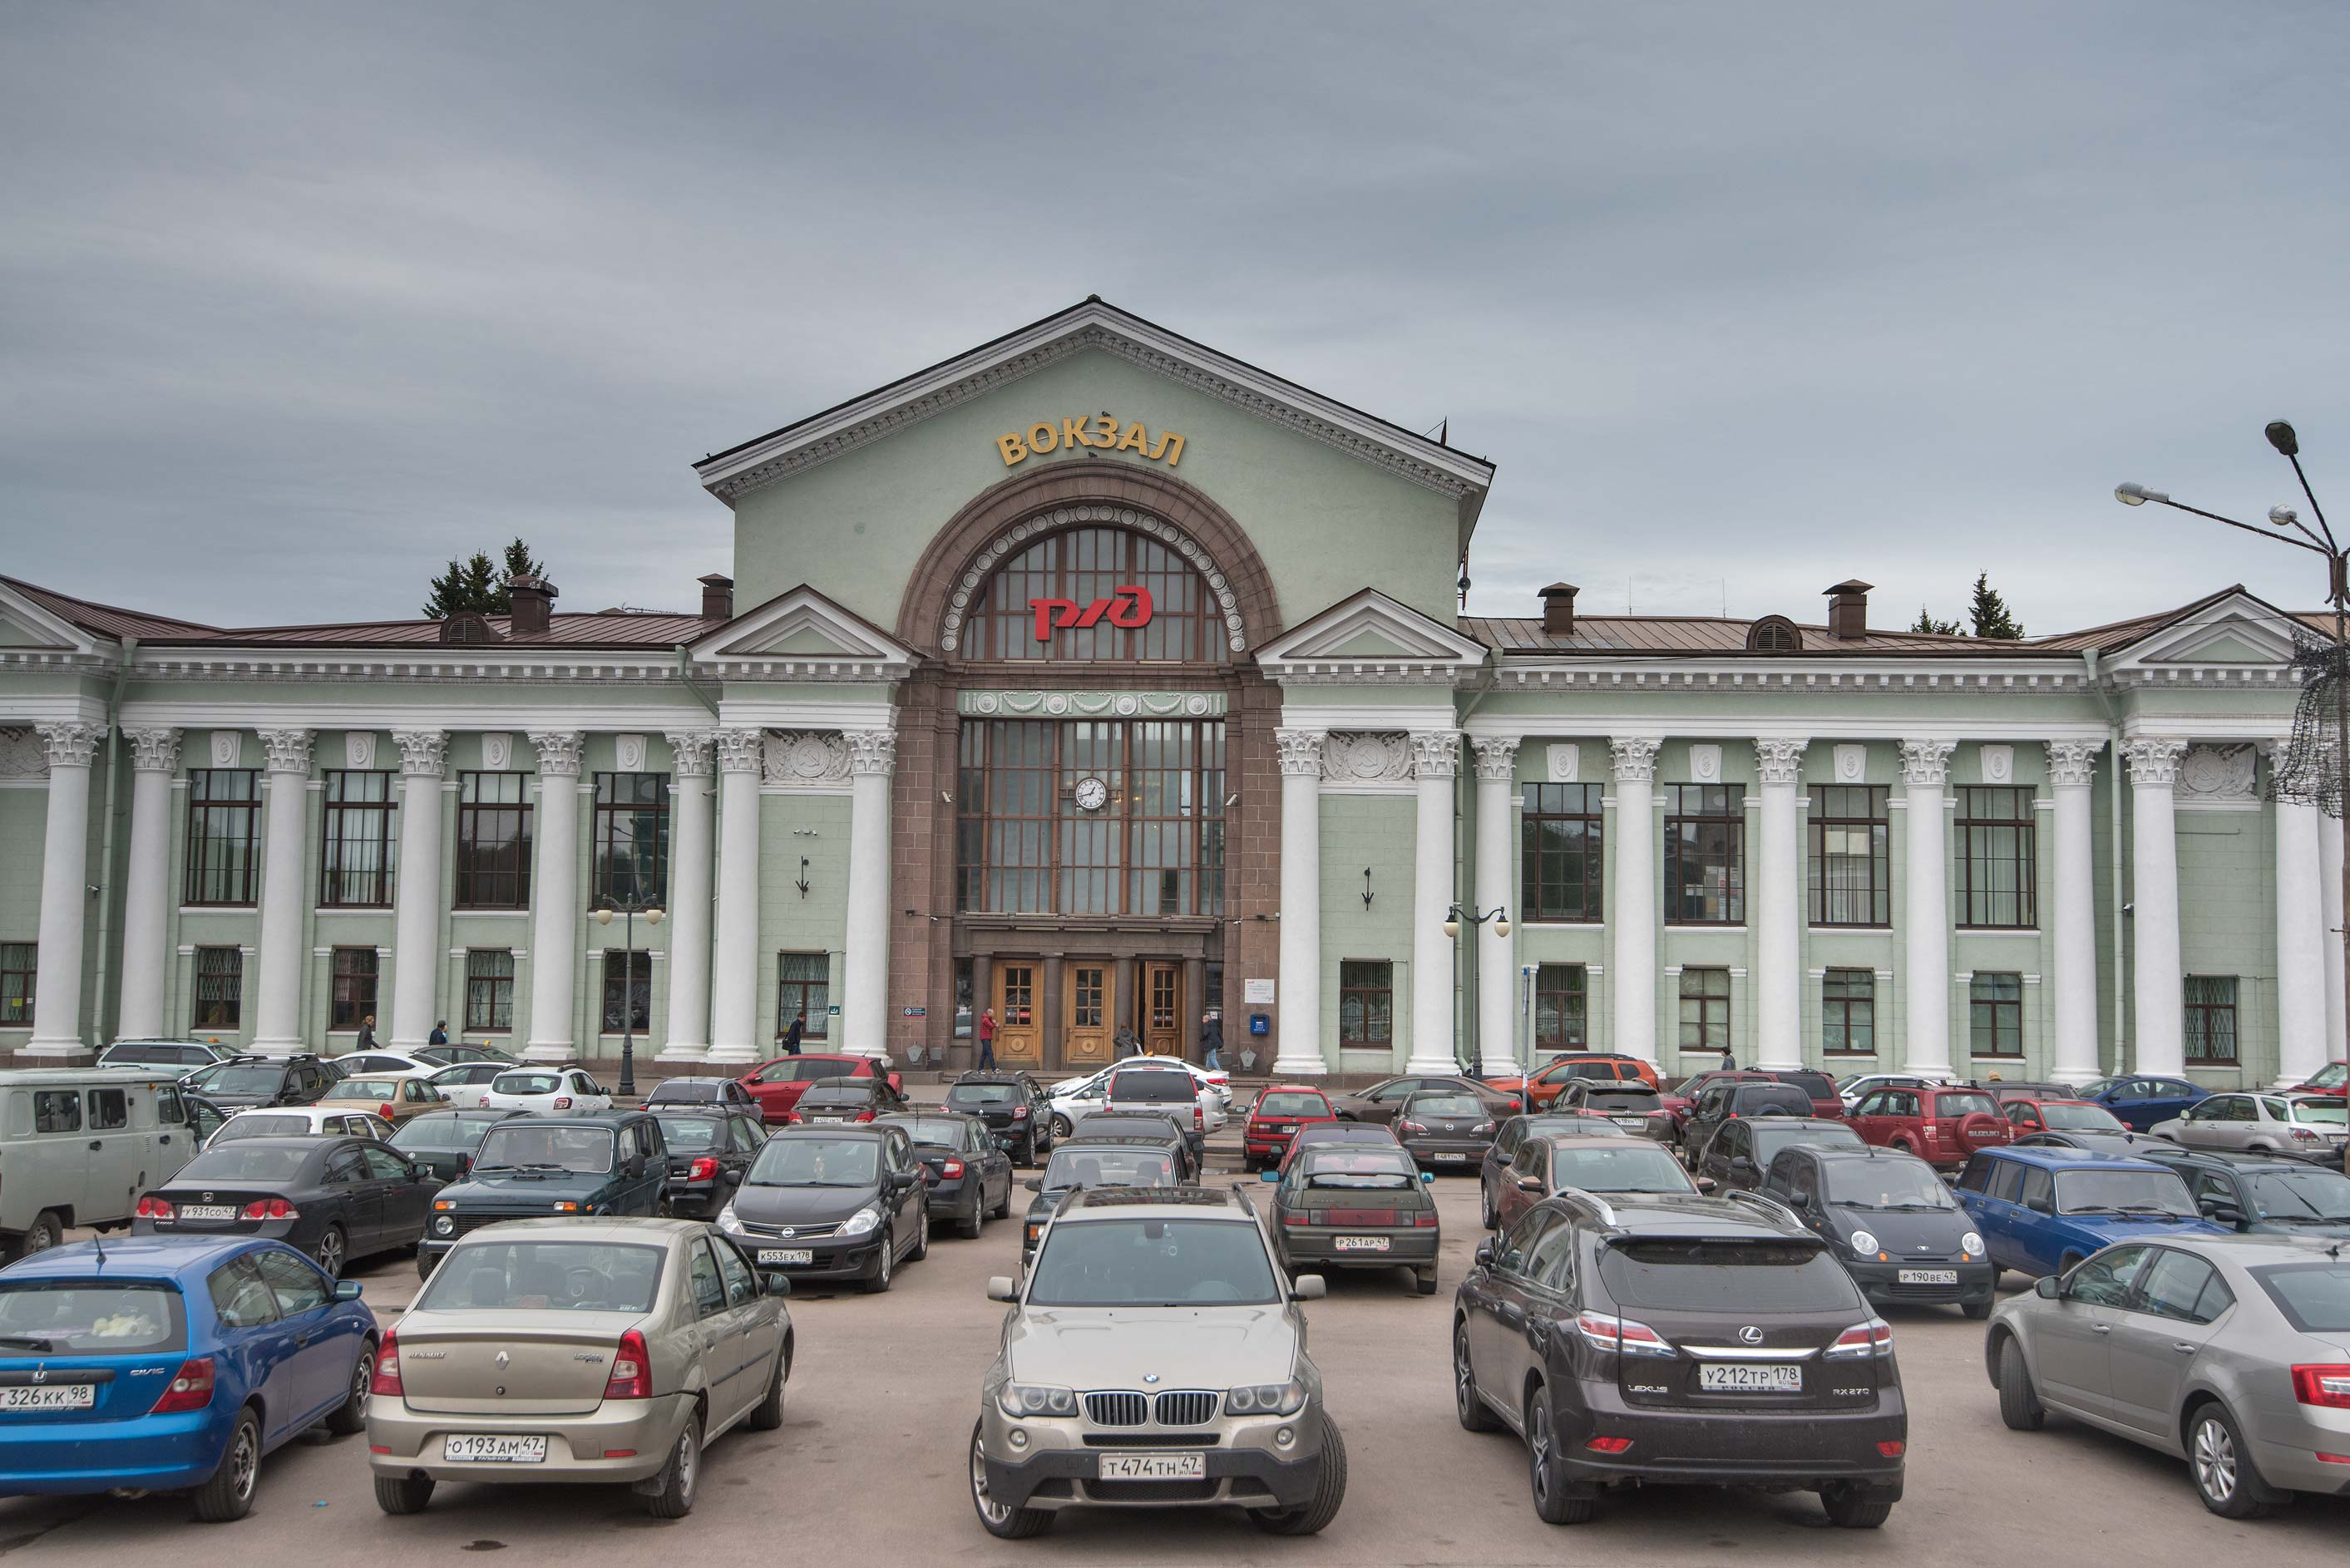 Parking in front of railway station in Vyborg. Russia